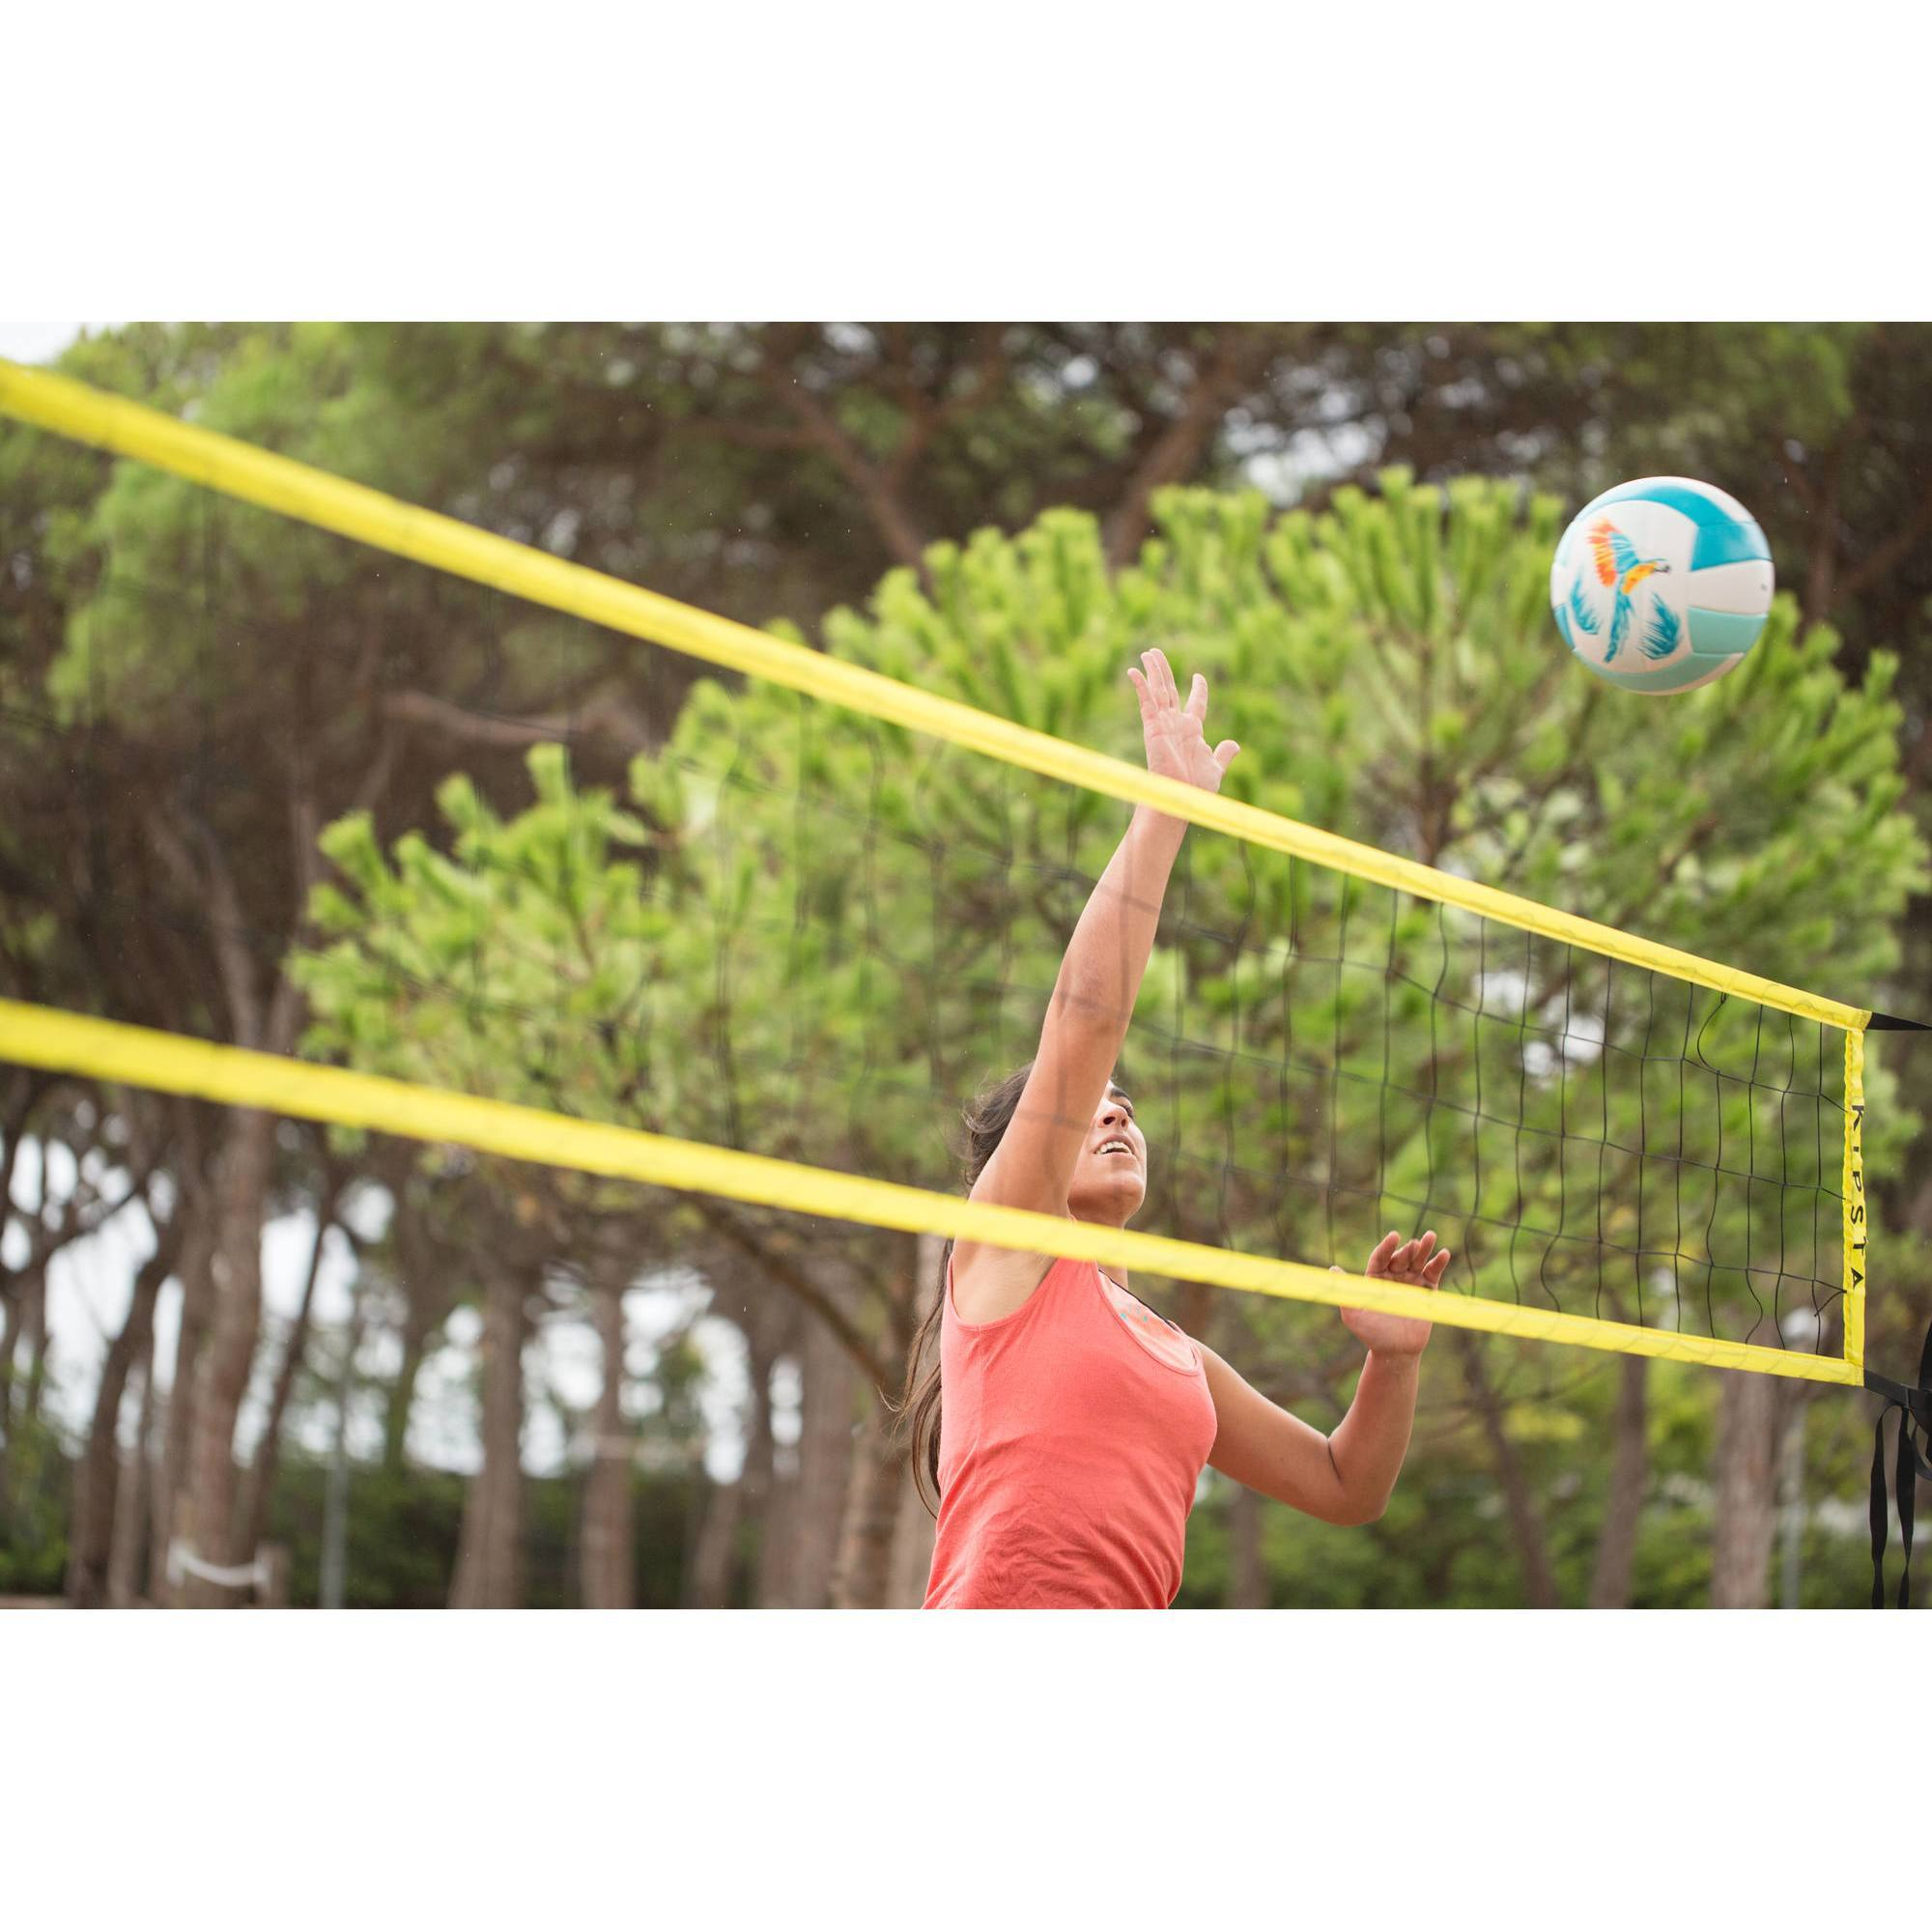 filet de volley et beach volley bv100 wiz net jaune clubs collectivit s decathlon pro. Black Bedroom Furniture Sets. Home Design Ideas